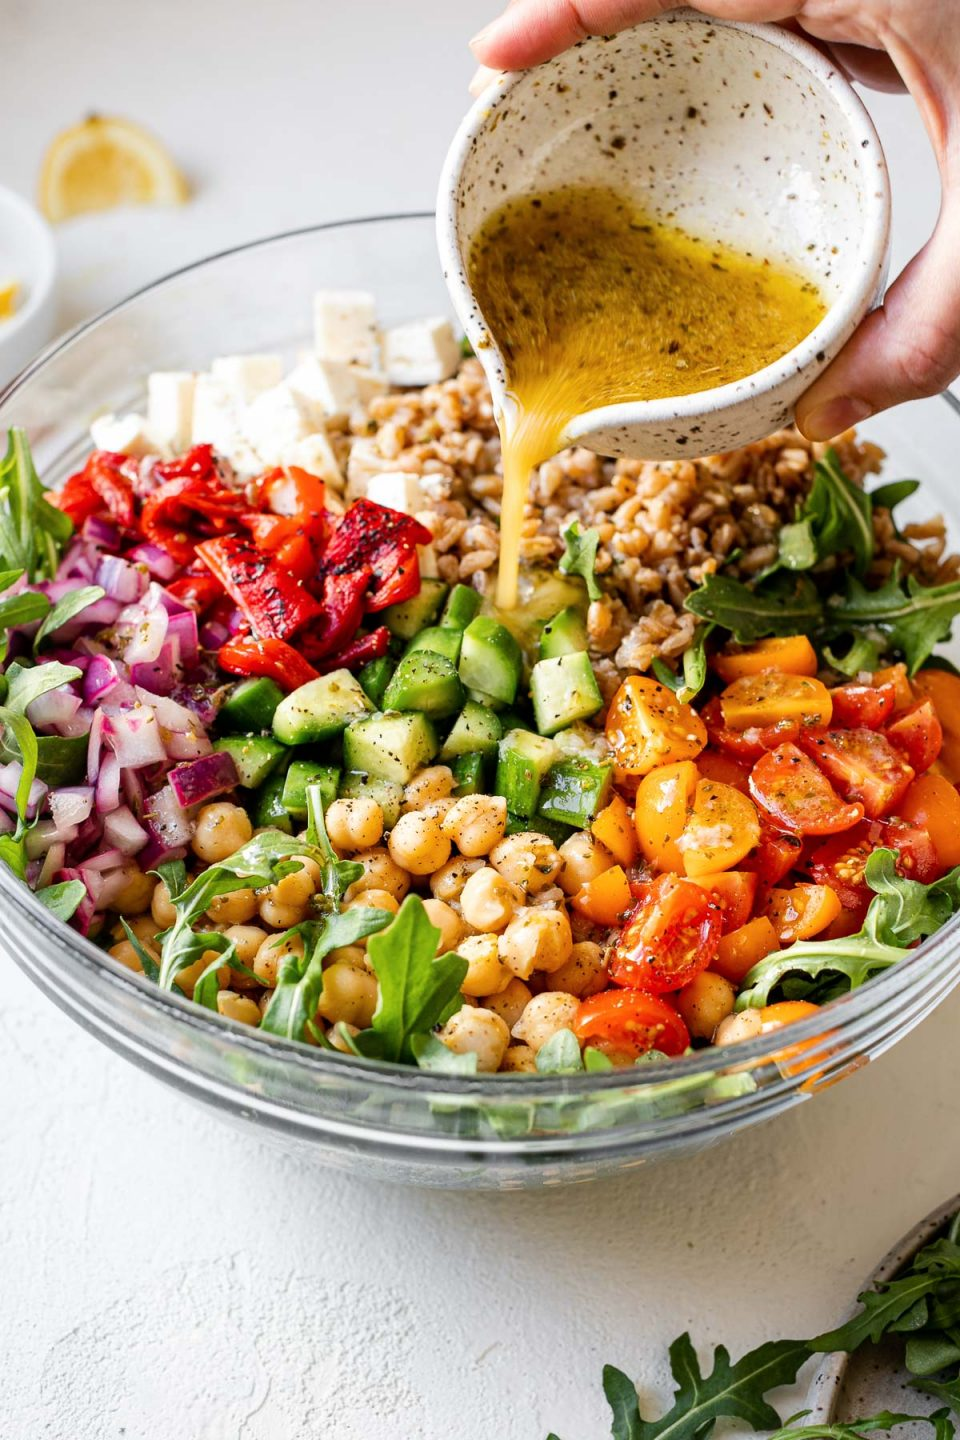 A woman's hand pours Greek dressing from bowl into Greek farro salad.